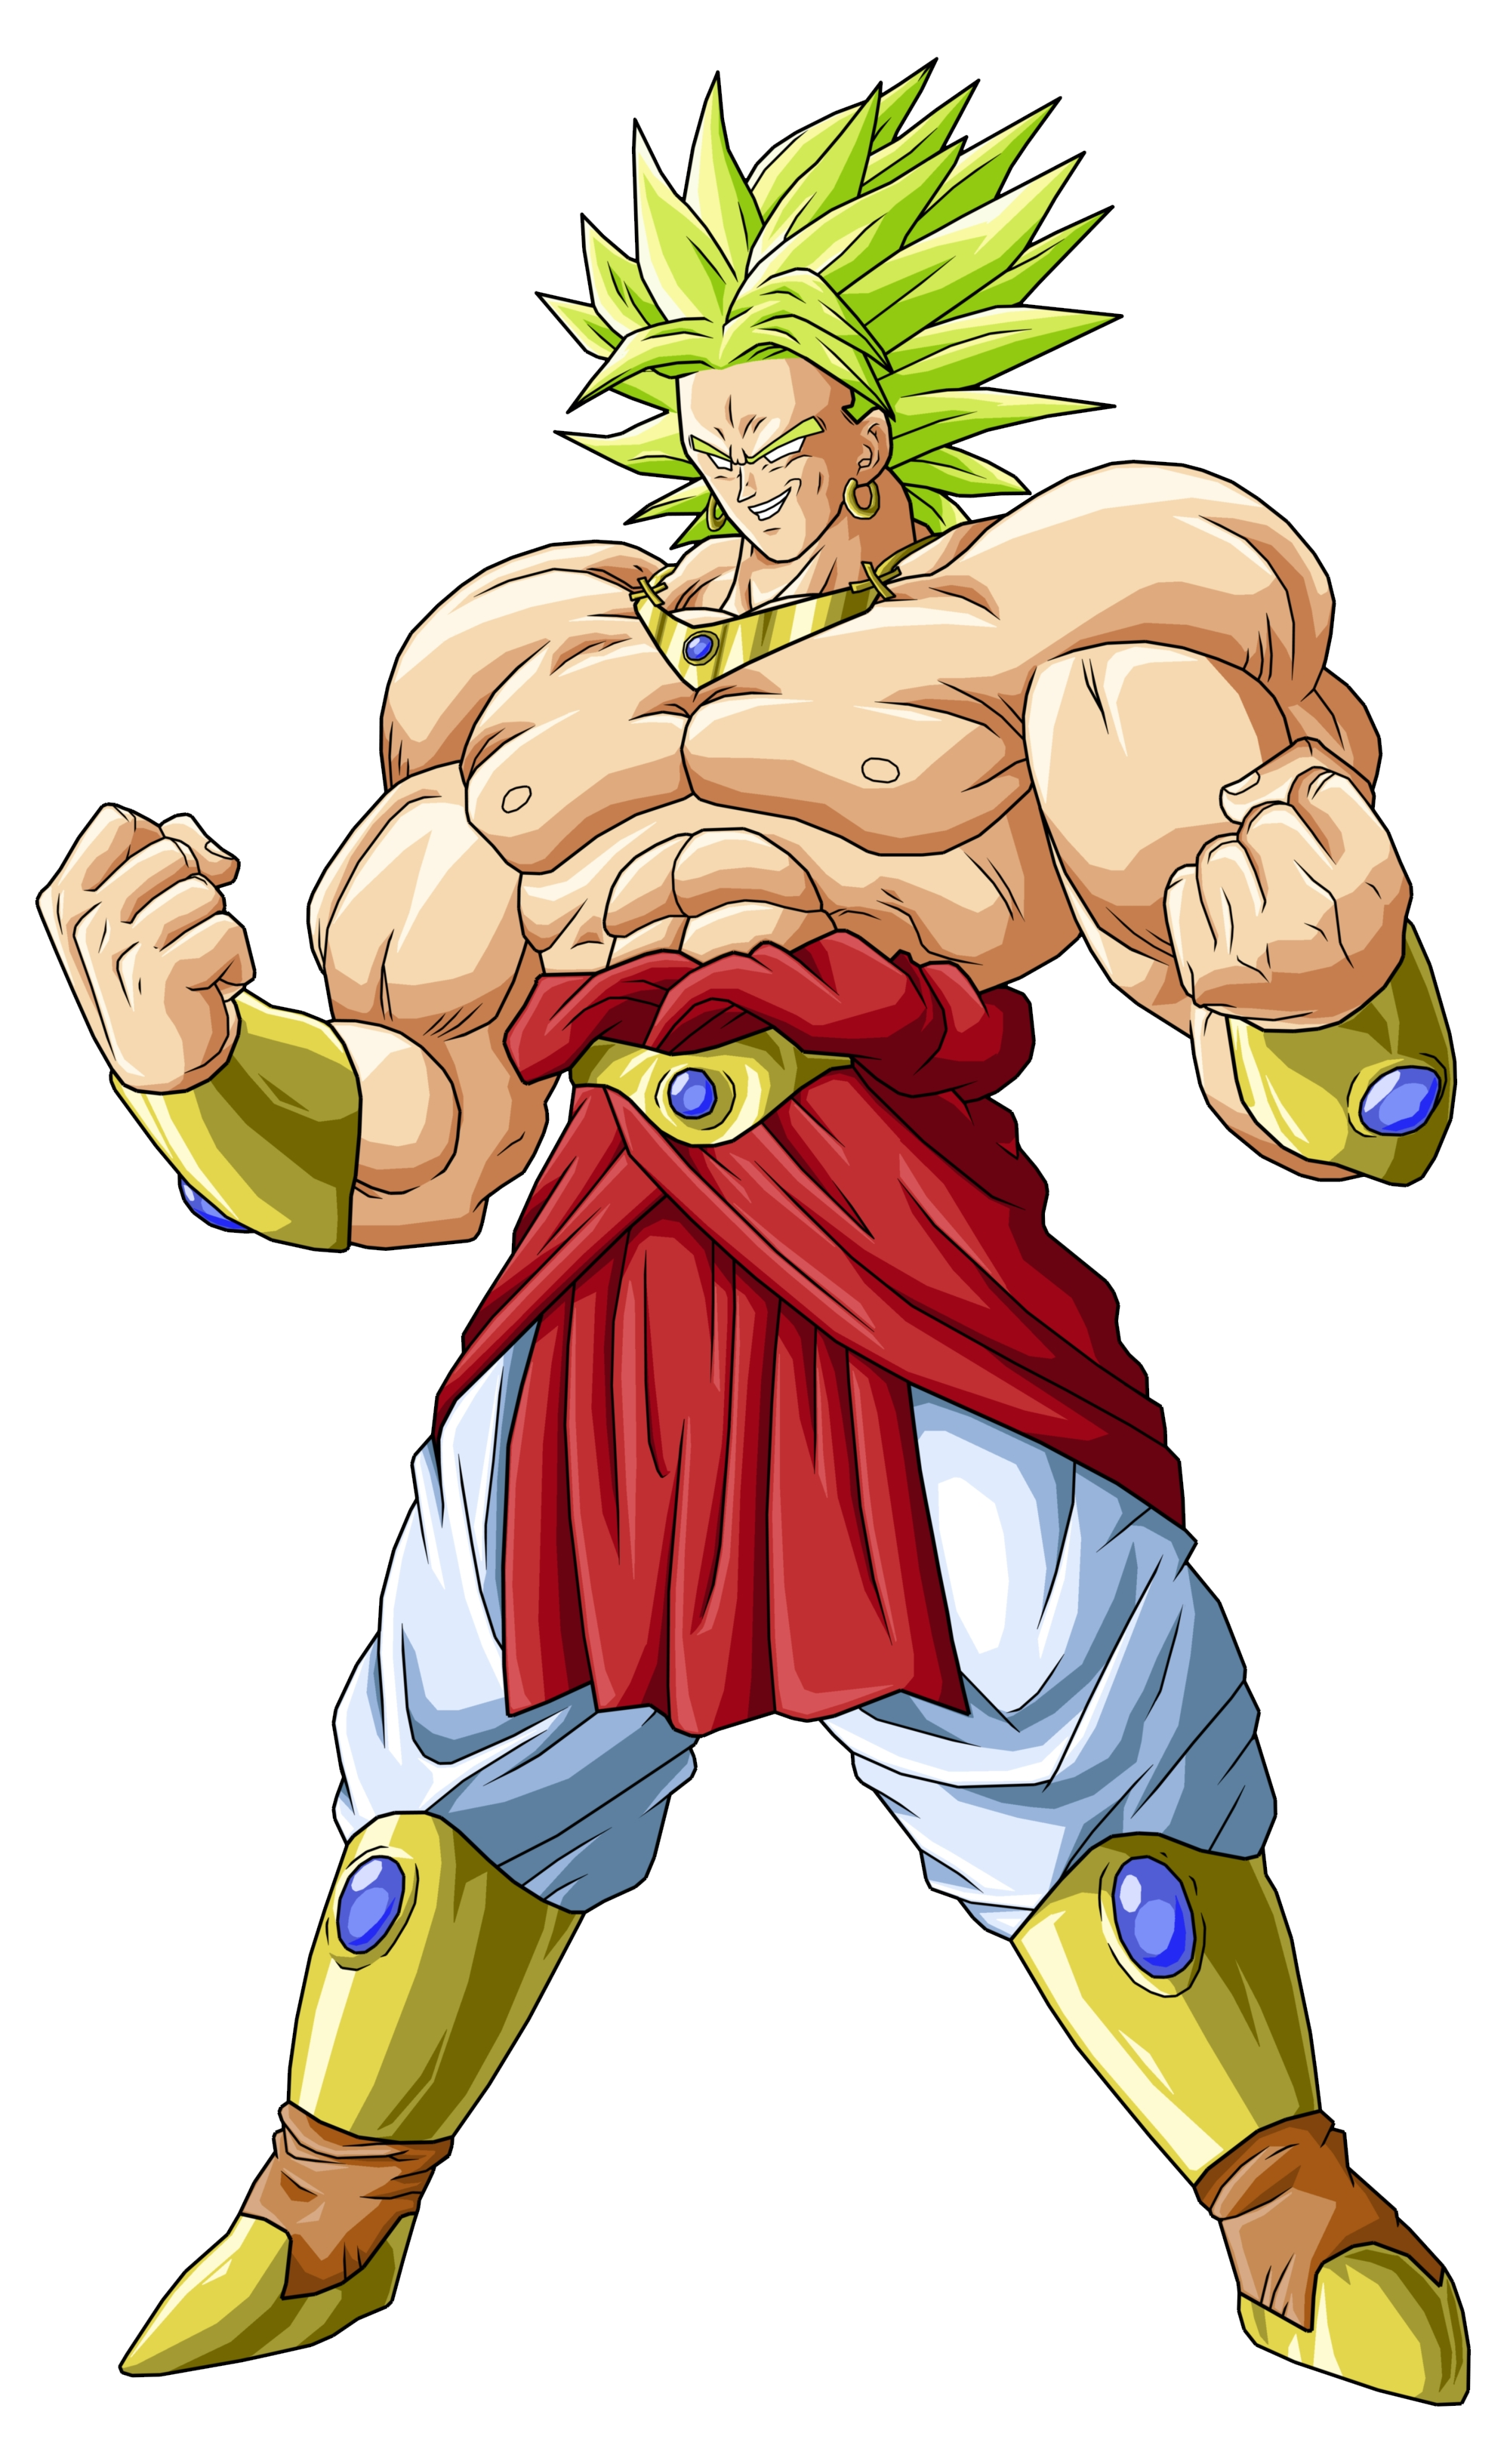 Imagen dbz broly dragon ball wiki fandom - Broly dragon ball gt ...